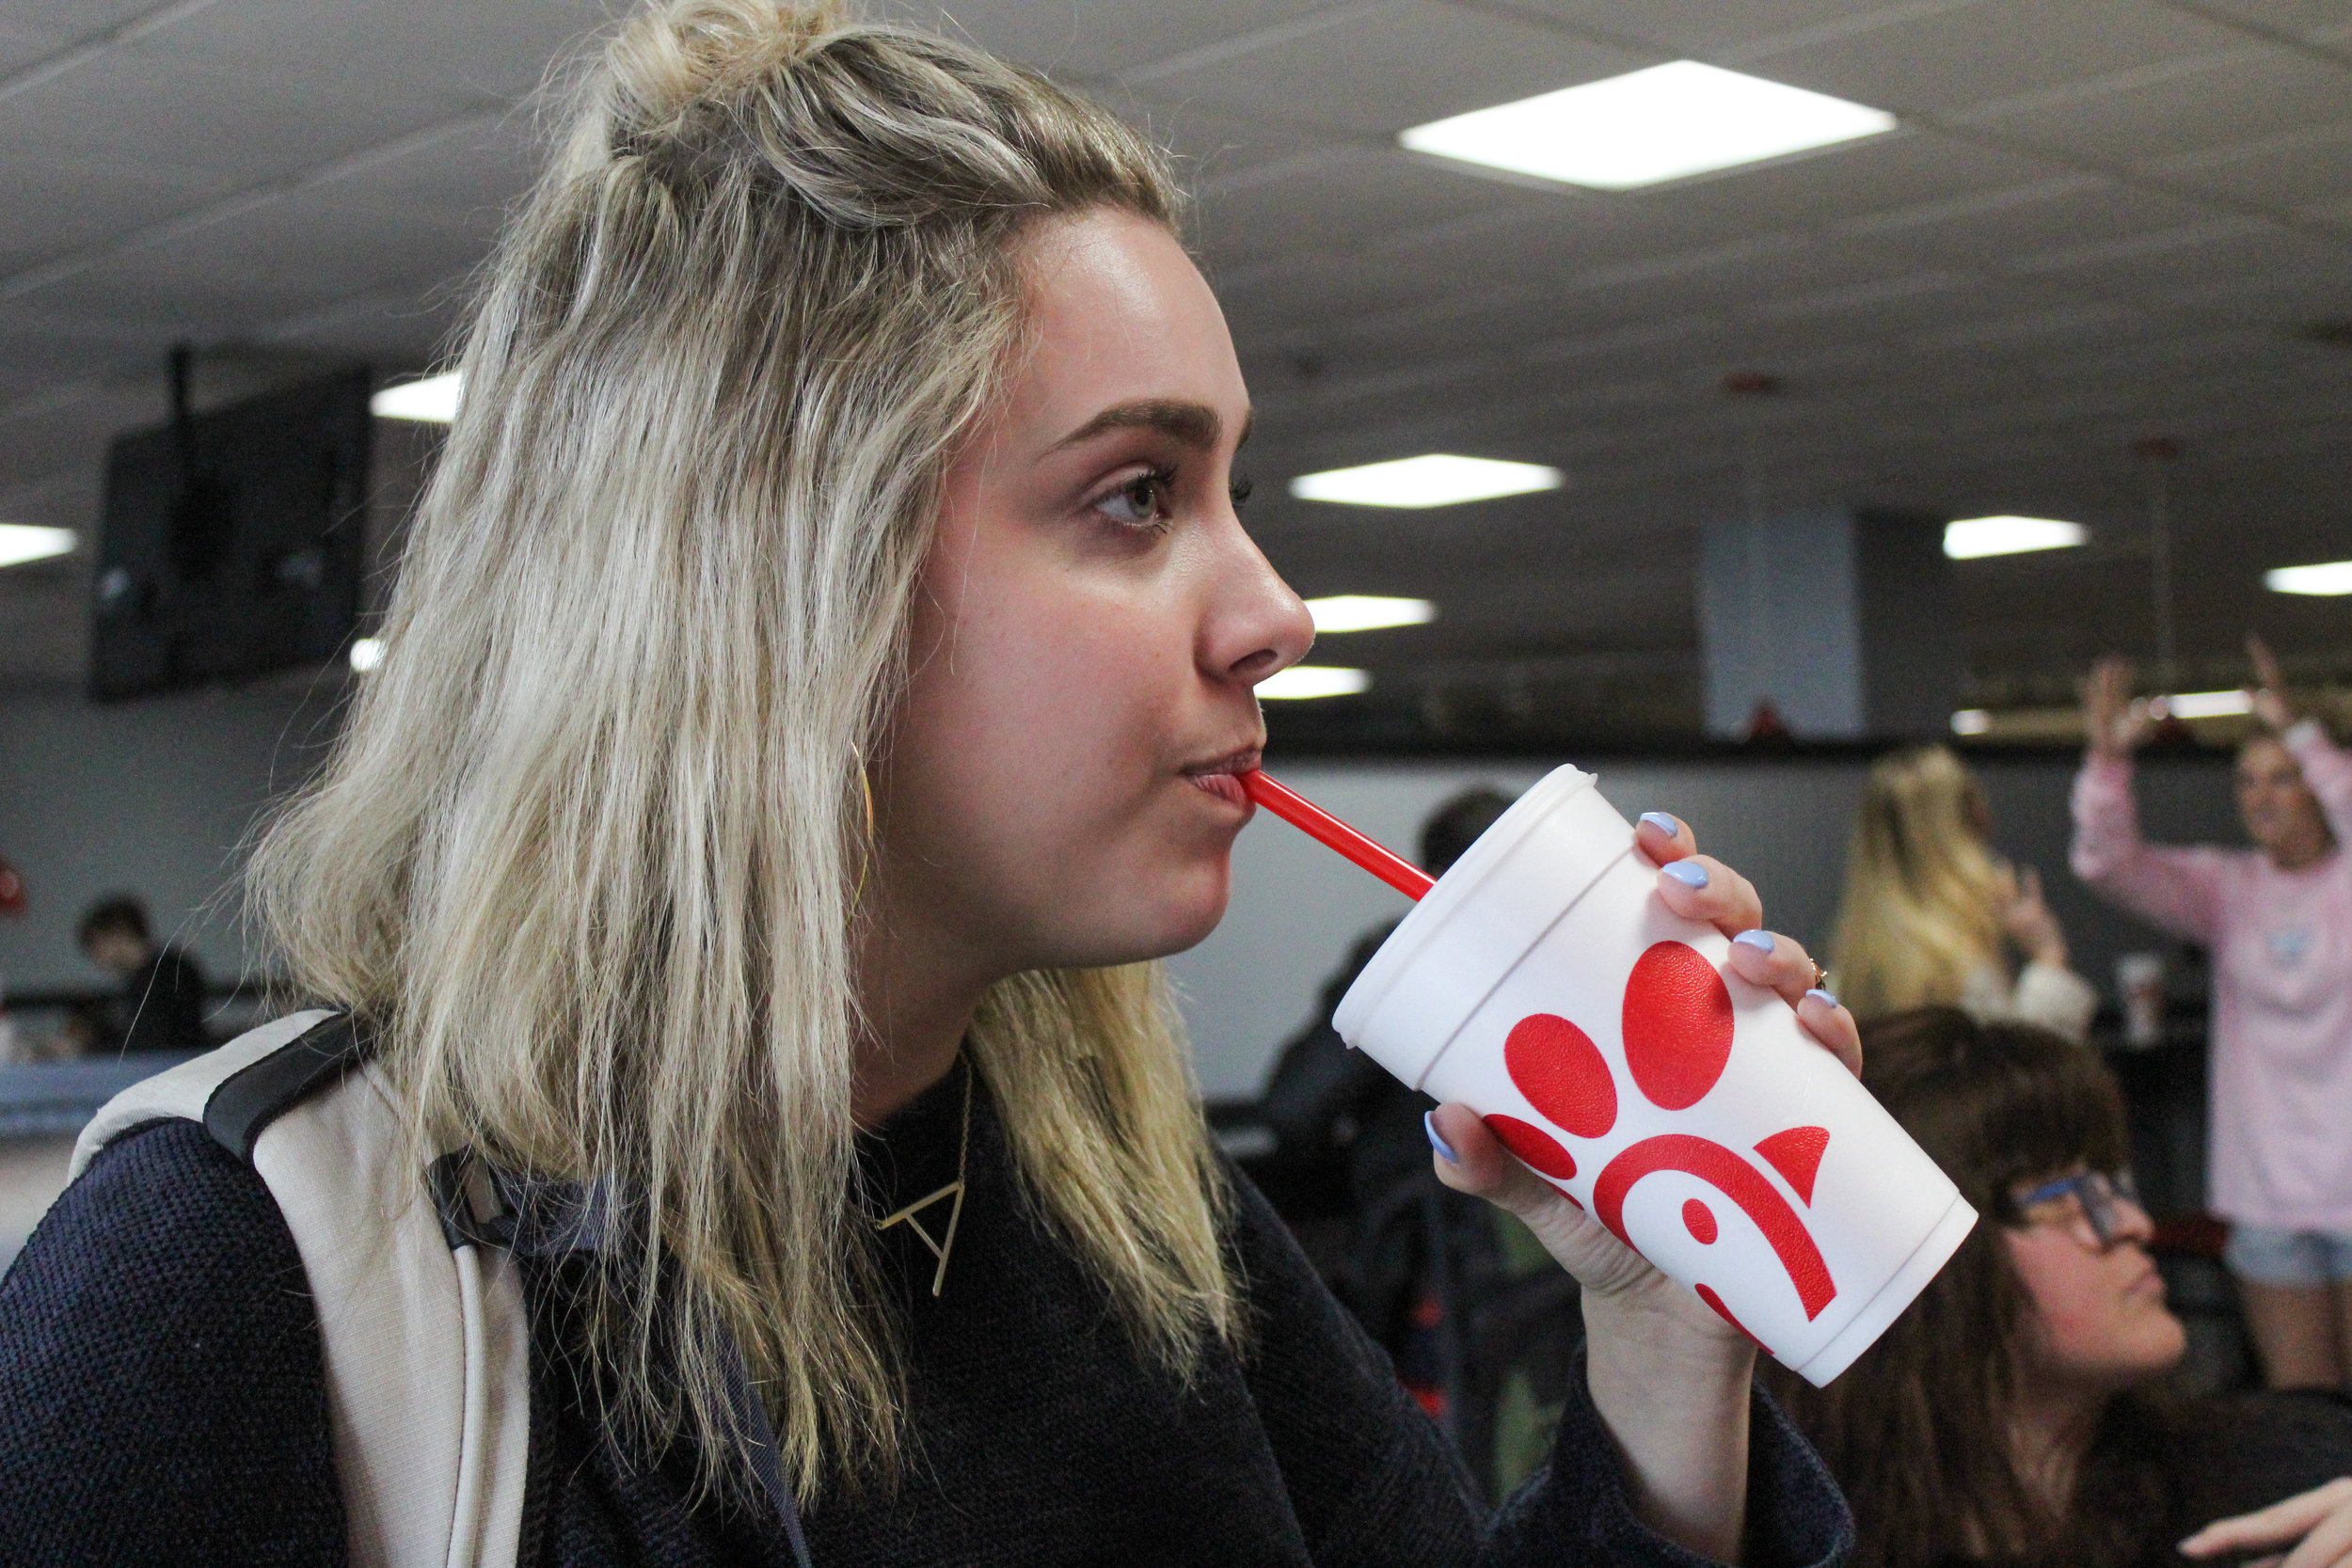 Freshman, Abby Swindal, waits in line for her lunch at Chick-fil-A.